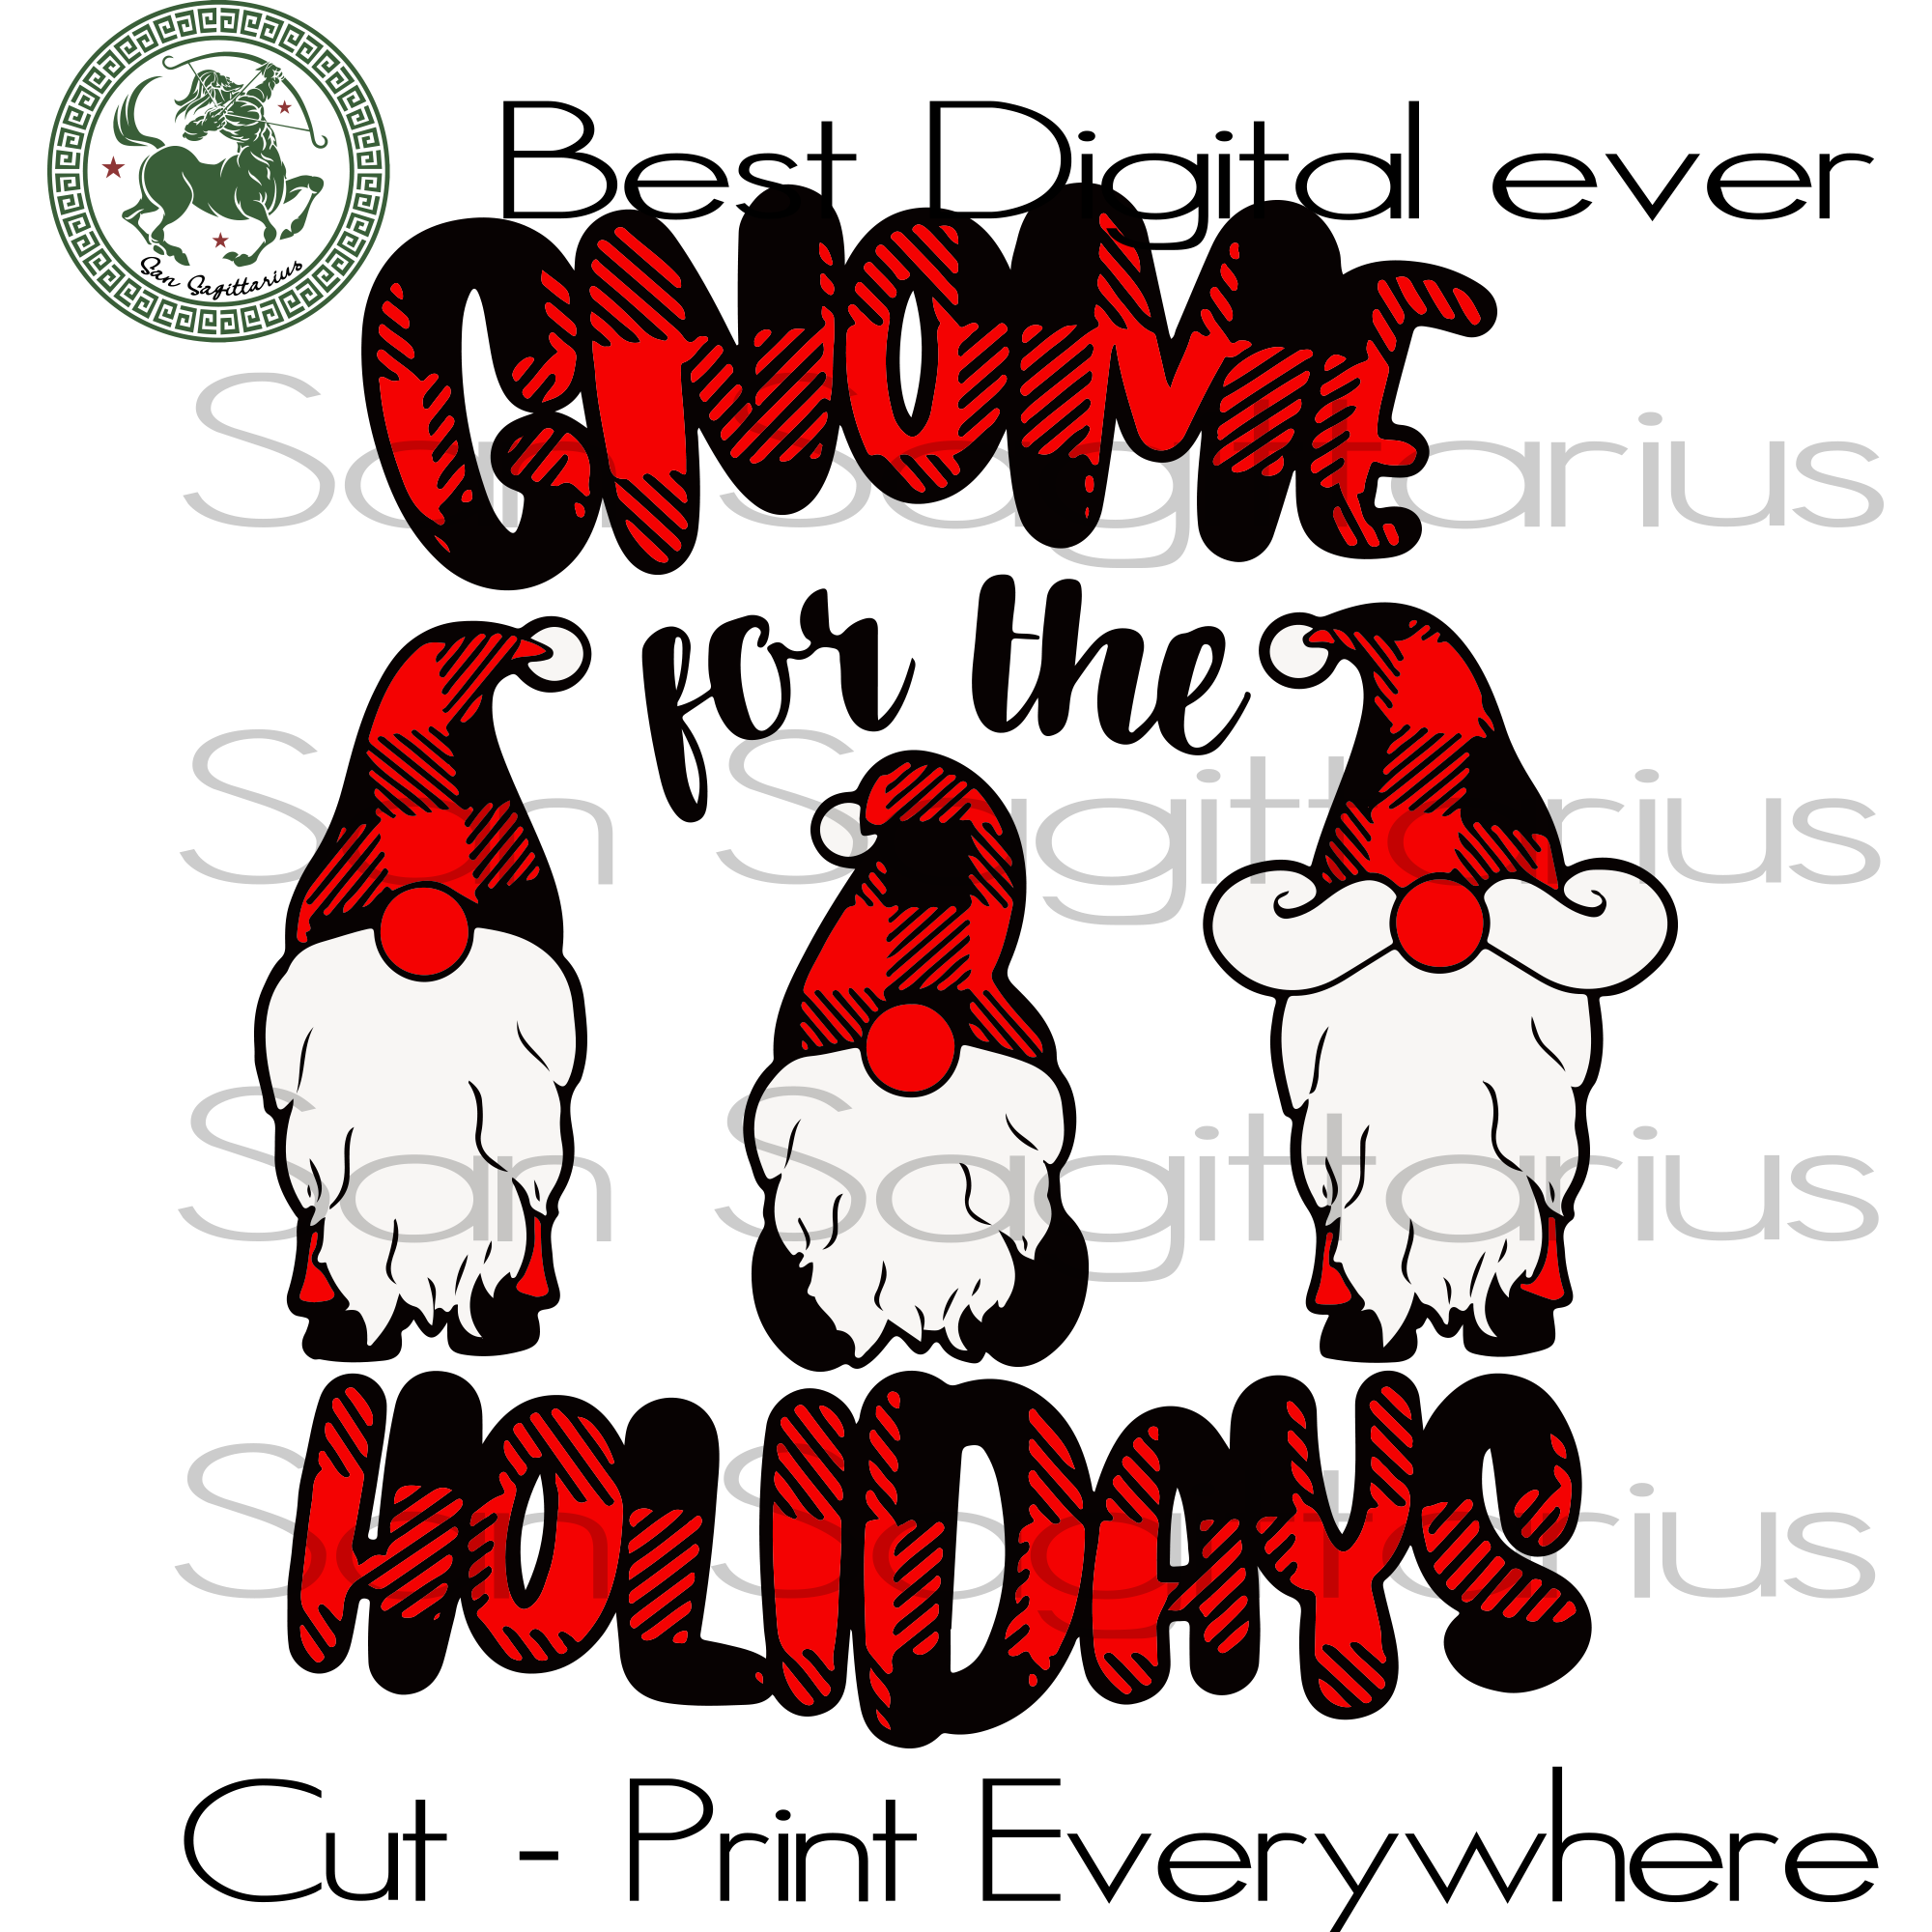 Gnome For The Holidays, Gnome Svg, Love Gnome, Gnomie Shirt, Gnome Gift, Christmas Gnome, Merry Christmas, Christmas Svg, Christmas Gift, Christmas Tree, Christmas Tree Svg, Christmas Decor,